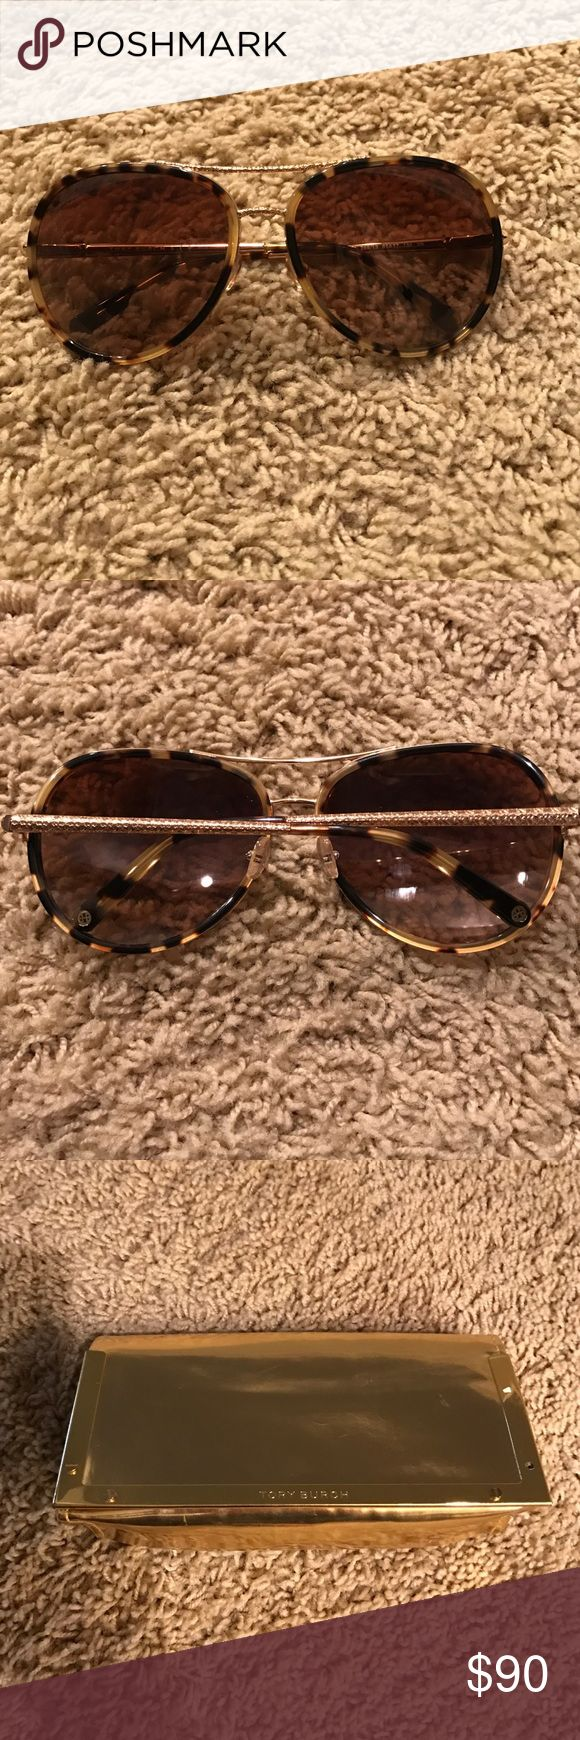 Tory Burch Tortoise Shell Sunglasses Tortoise Shell and Gold Tory Burch sunglasses. Never been worn. Gold storing case has some scratches. Tory Burch Accessories Sunglasses